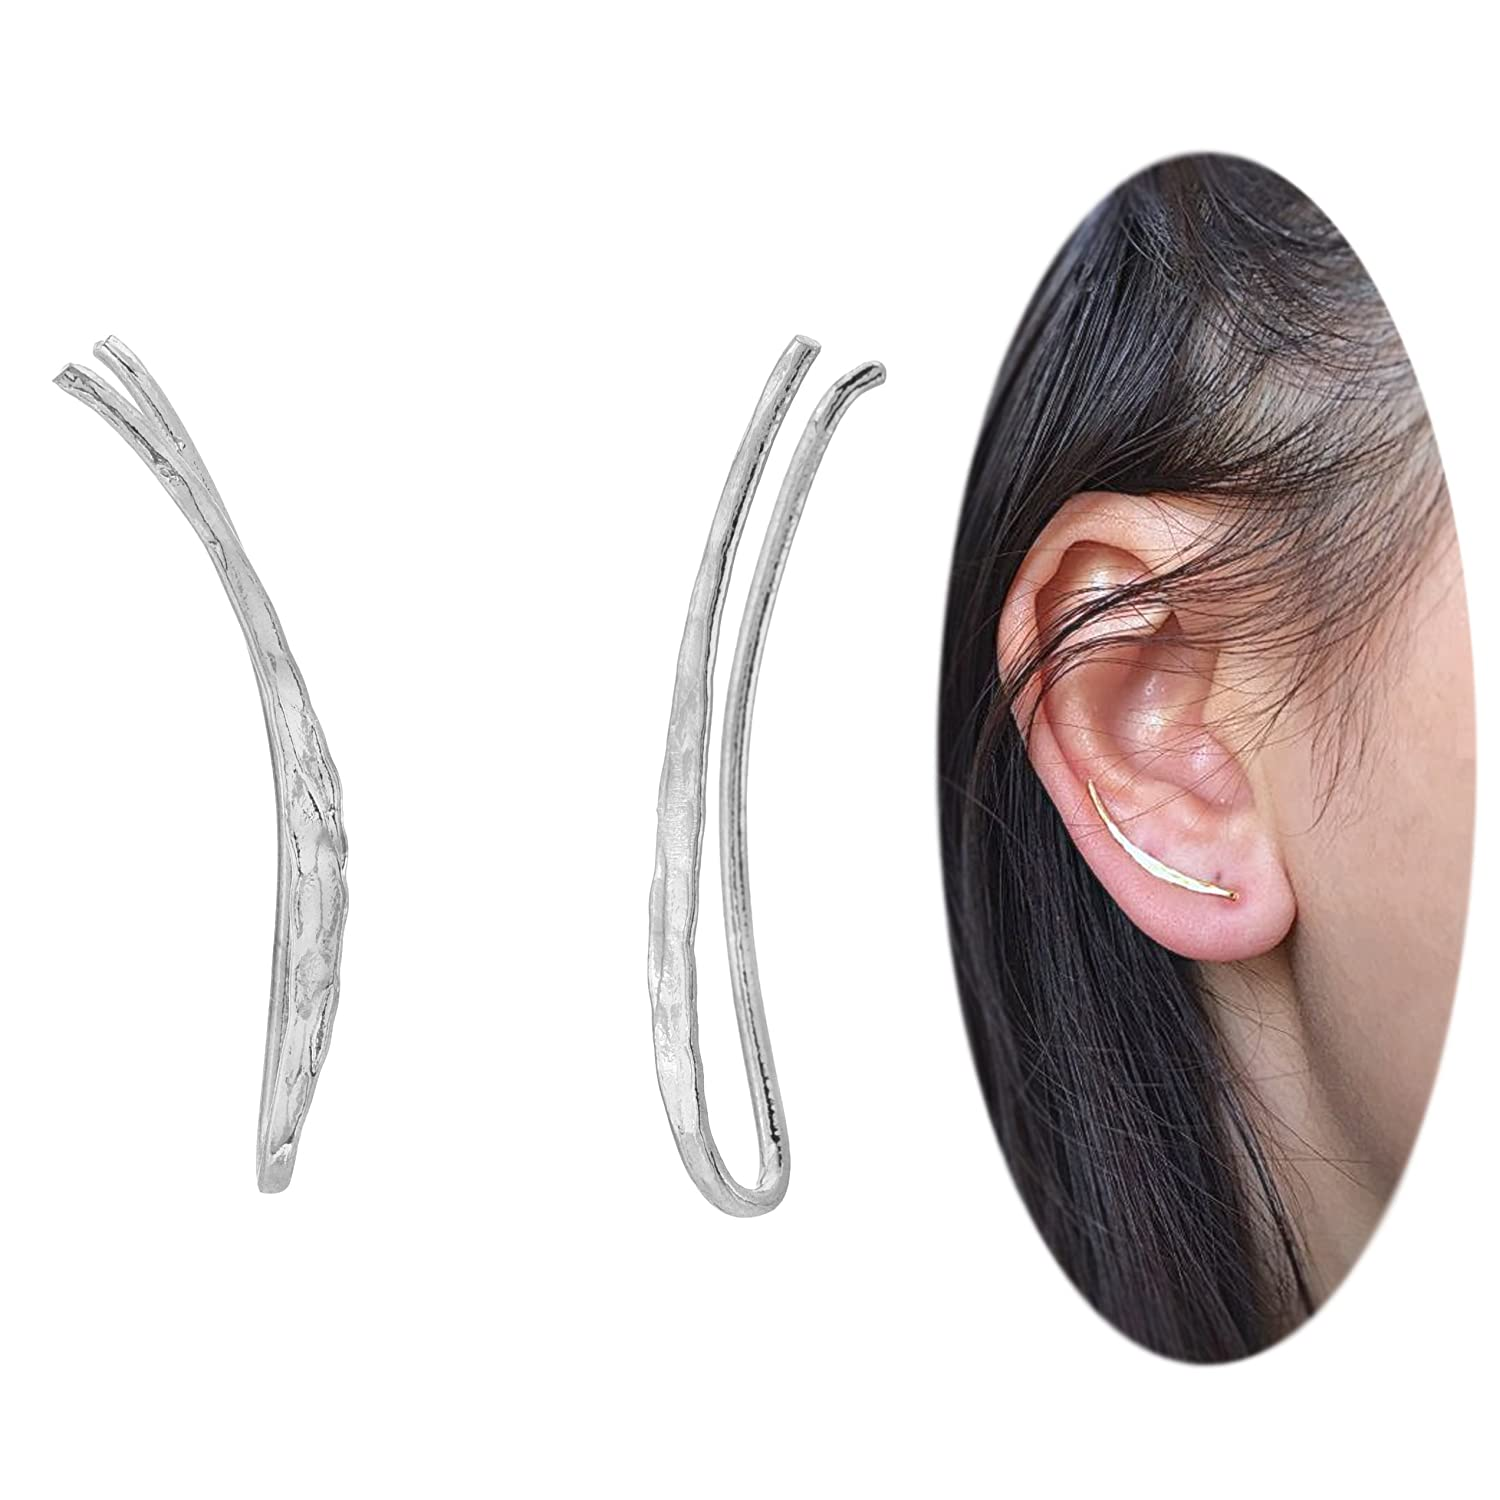 Ear Climber Crawler Cuff Earrings - 925 Sterling Silver Plated with 18K Gold CY Supplies 304B